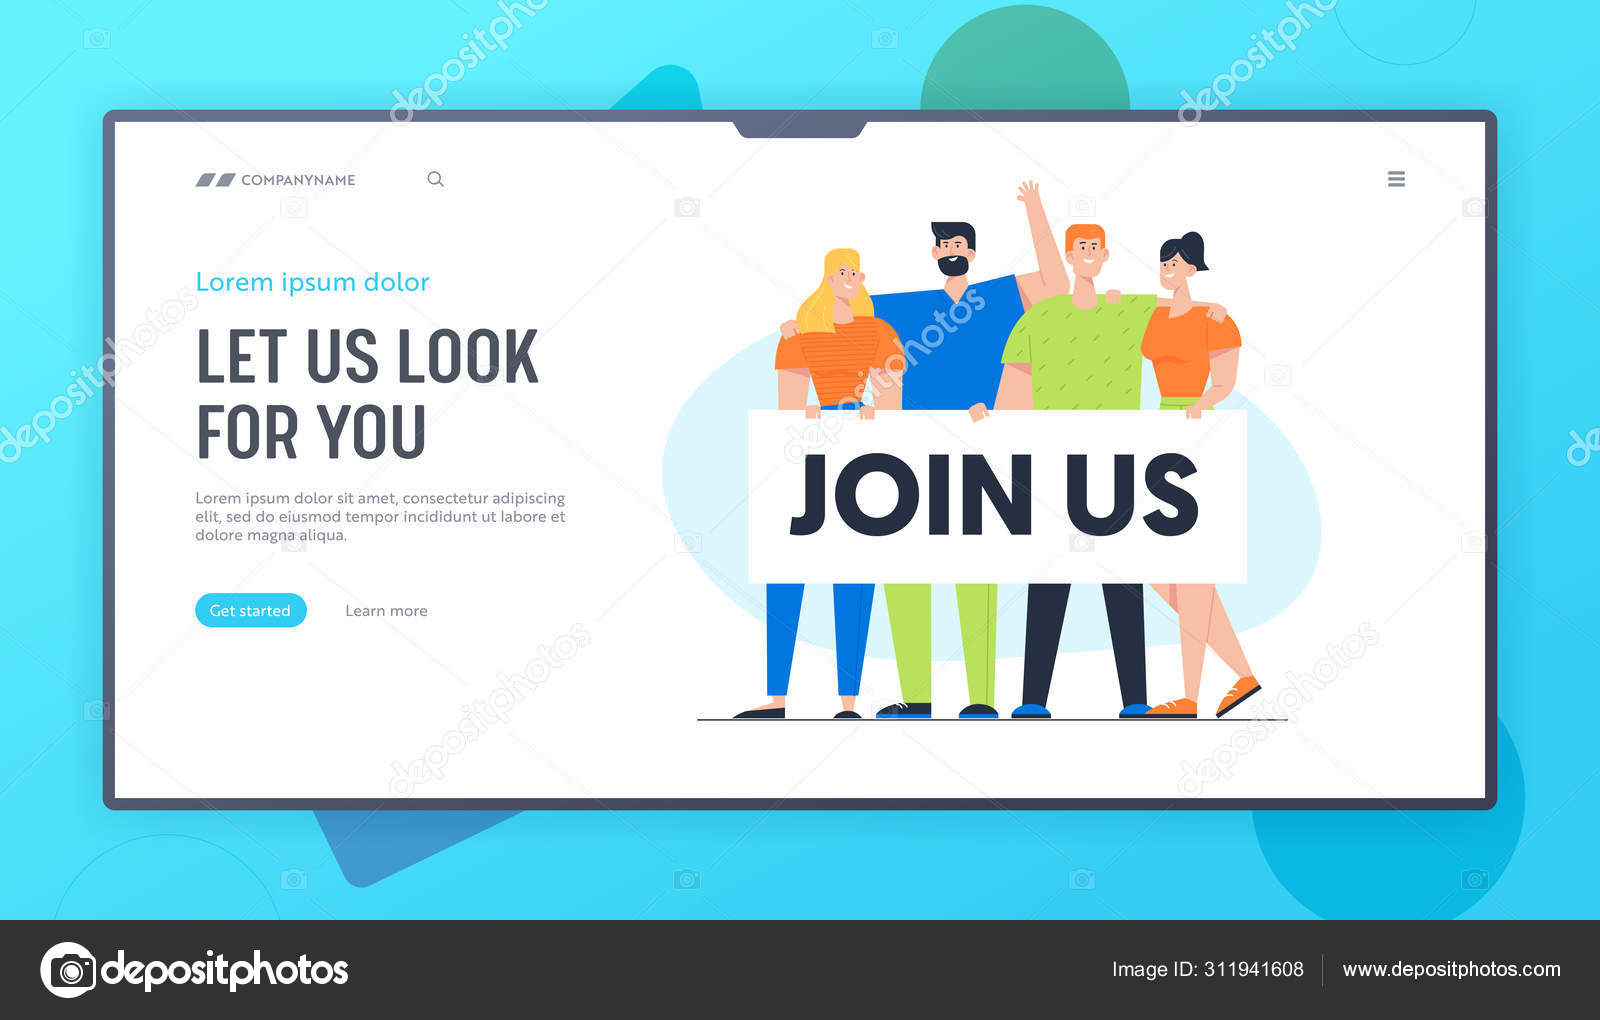 Hiring Career Employment And Searching Human Resources Website Landing Page People Men And Women Characters Holding Banner With Join Us Typography Web Page Banner Cartoon Flat Vector Illustration Stock Vector C